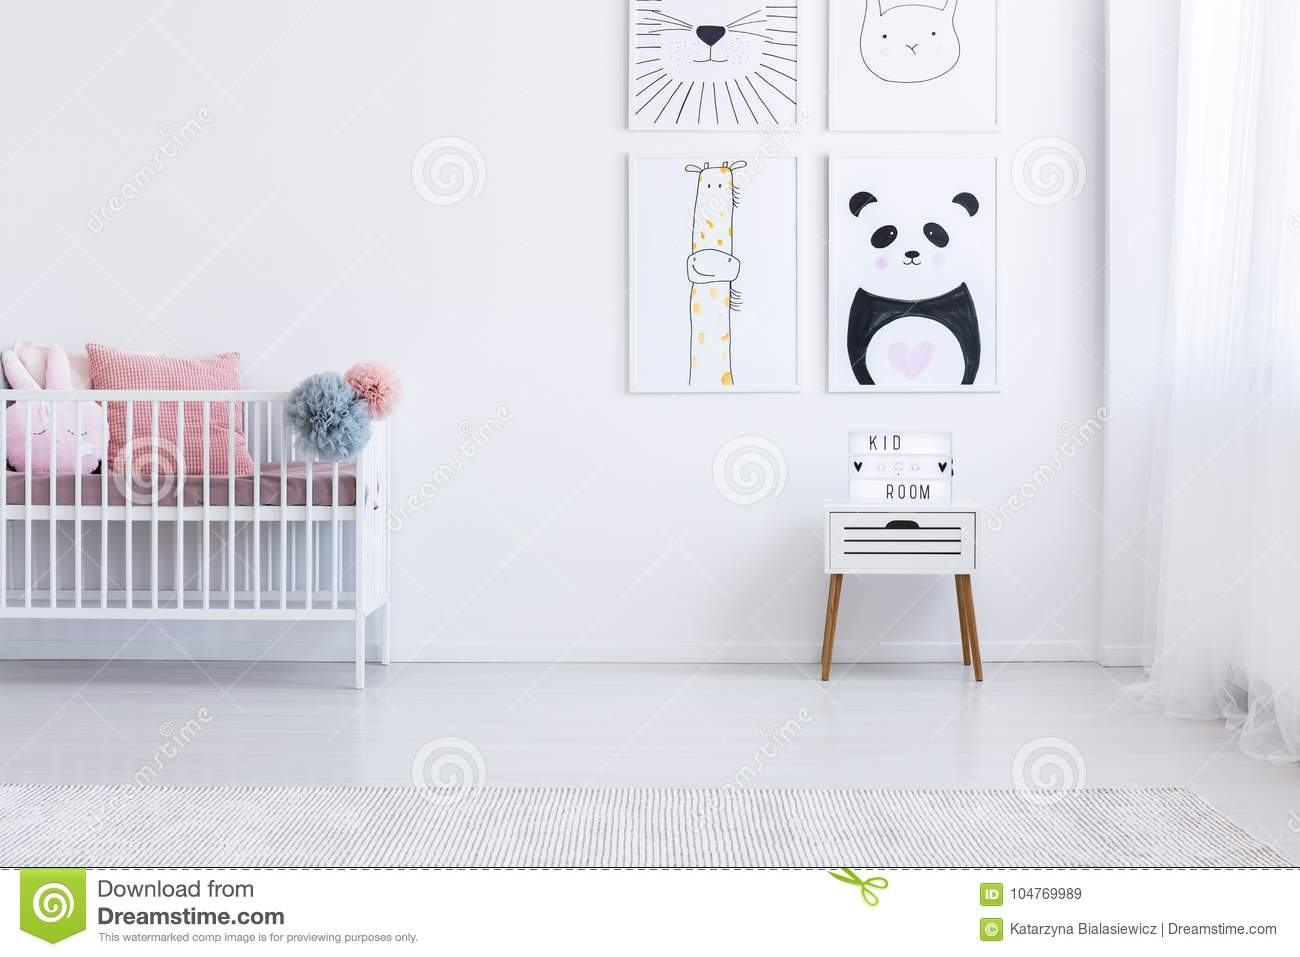 Black and white drawing on wall above cabinet in kids interior with pastel bedding